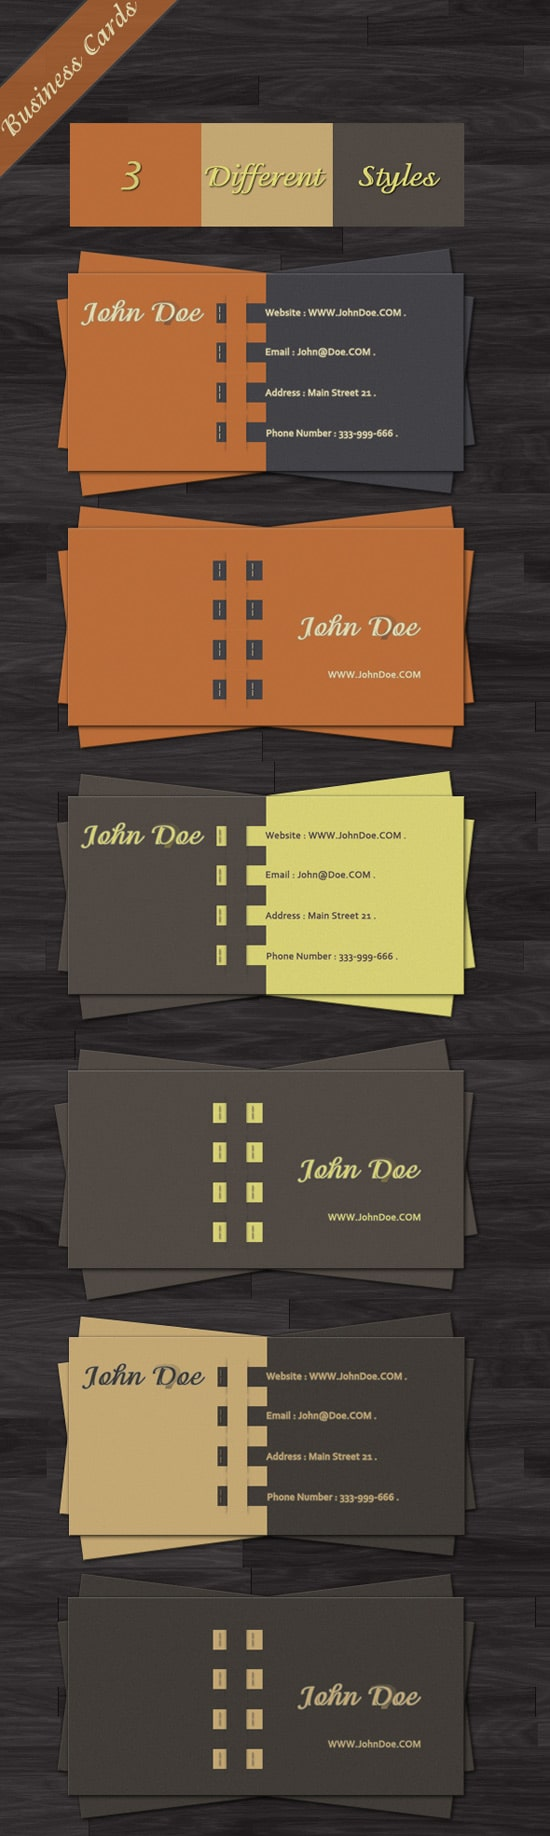 100 free business card templates designrfix business is business free psd vector business card fbccfo Gallery